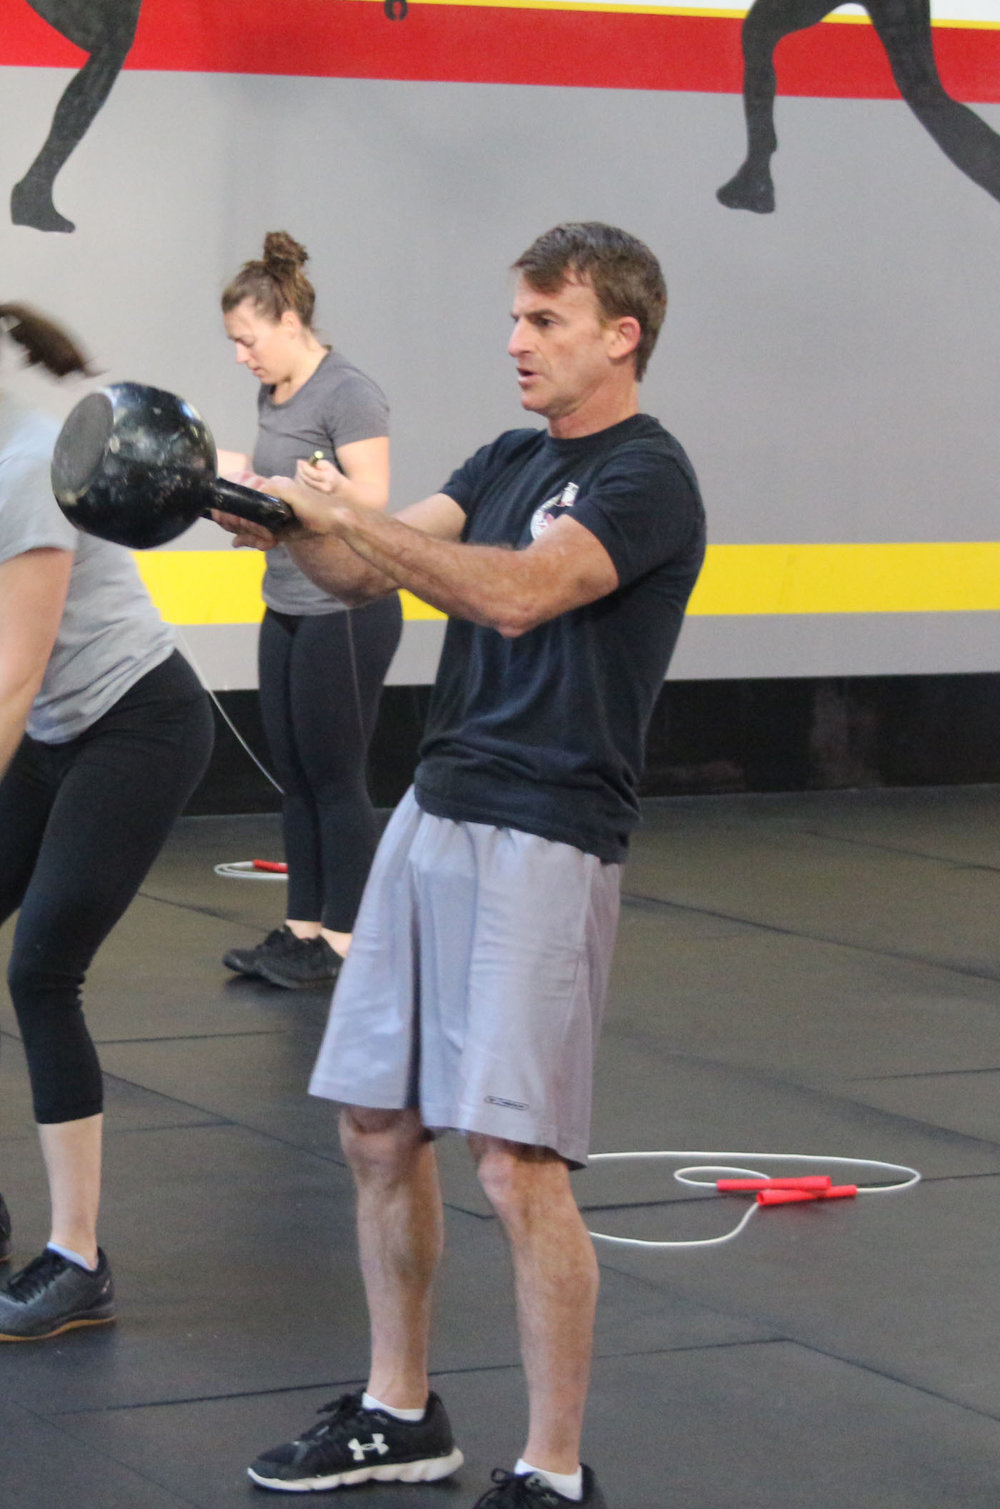 Stu swinging a 70lb Kettlebell. Have a fabulous birthday!